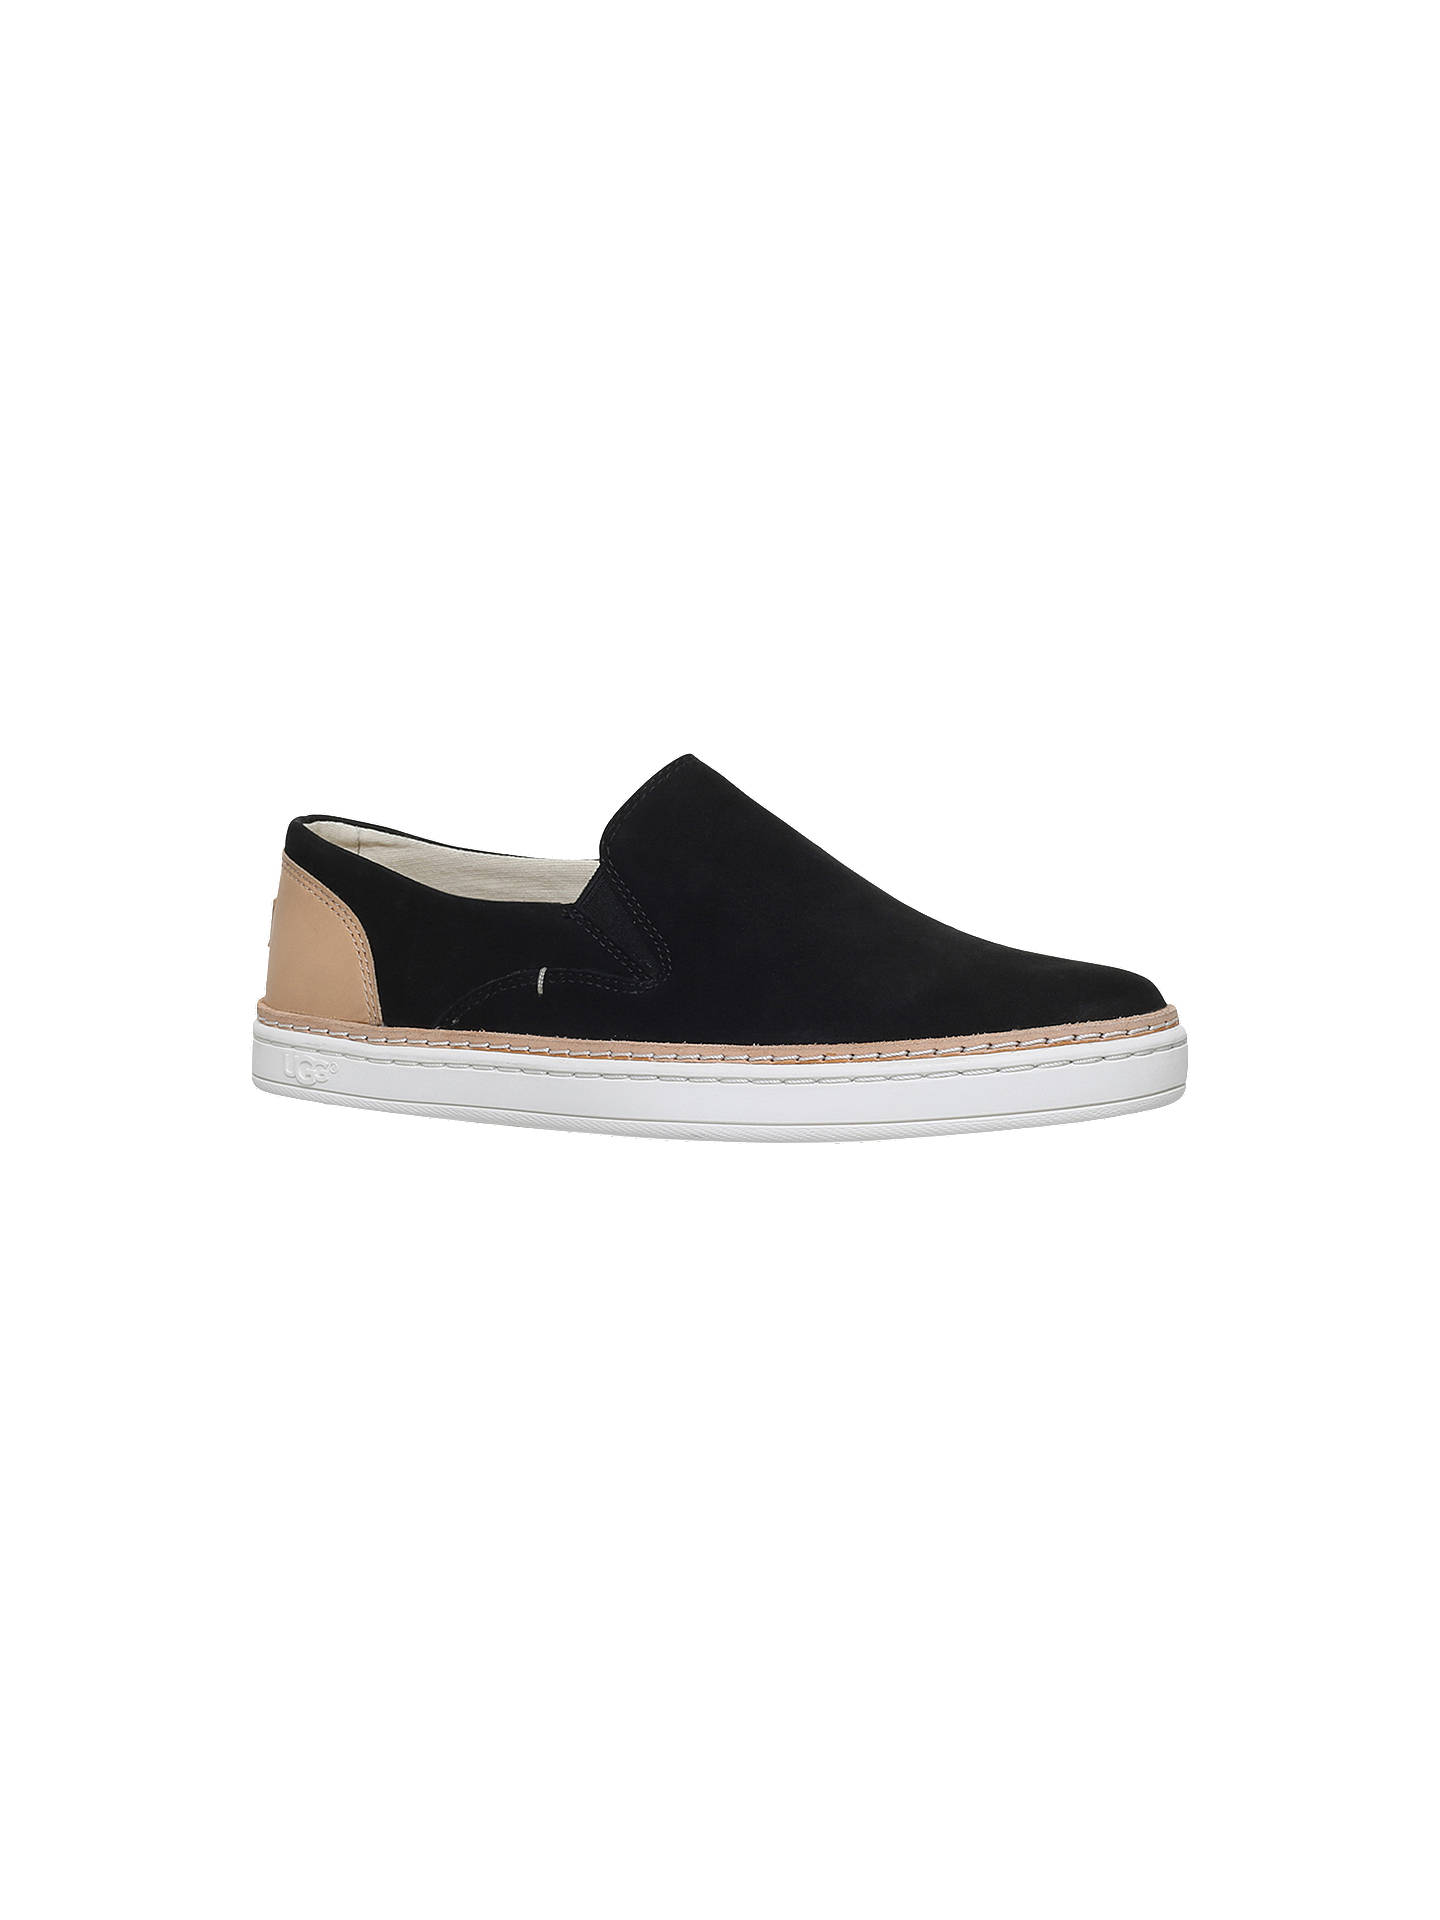 f304e2ad832 UGG Adley Slip On Trainers at John Lewis & Partners